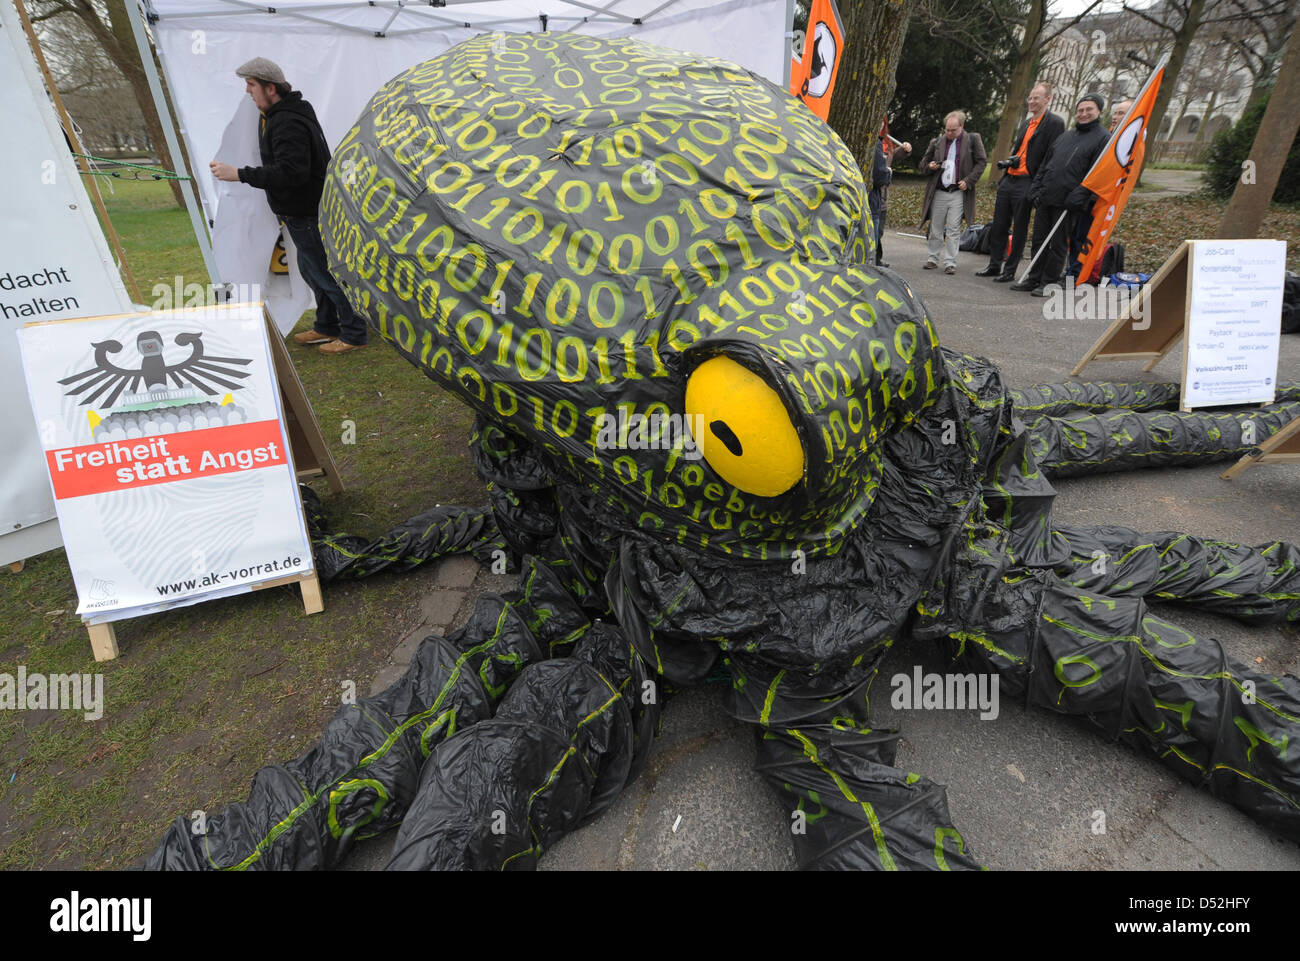 Activists protest with a so-called data octopi in front of the Federal Constitutional Court prior to the sentencing - Stock Image